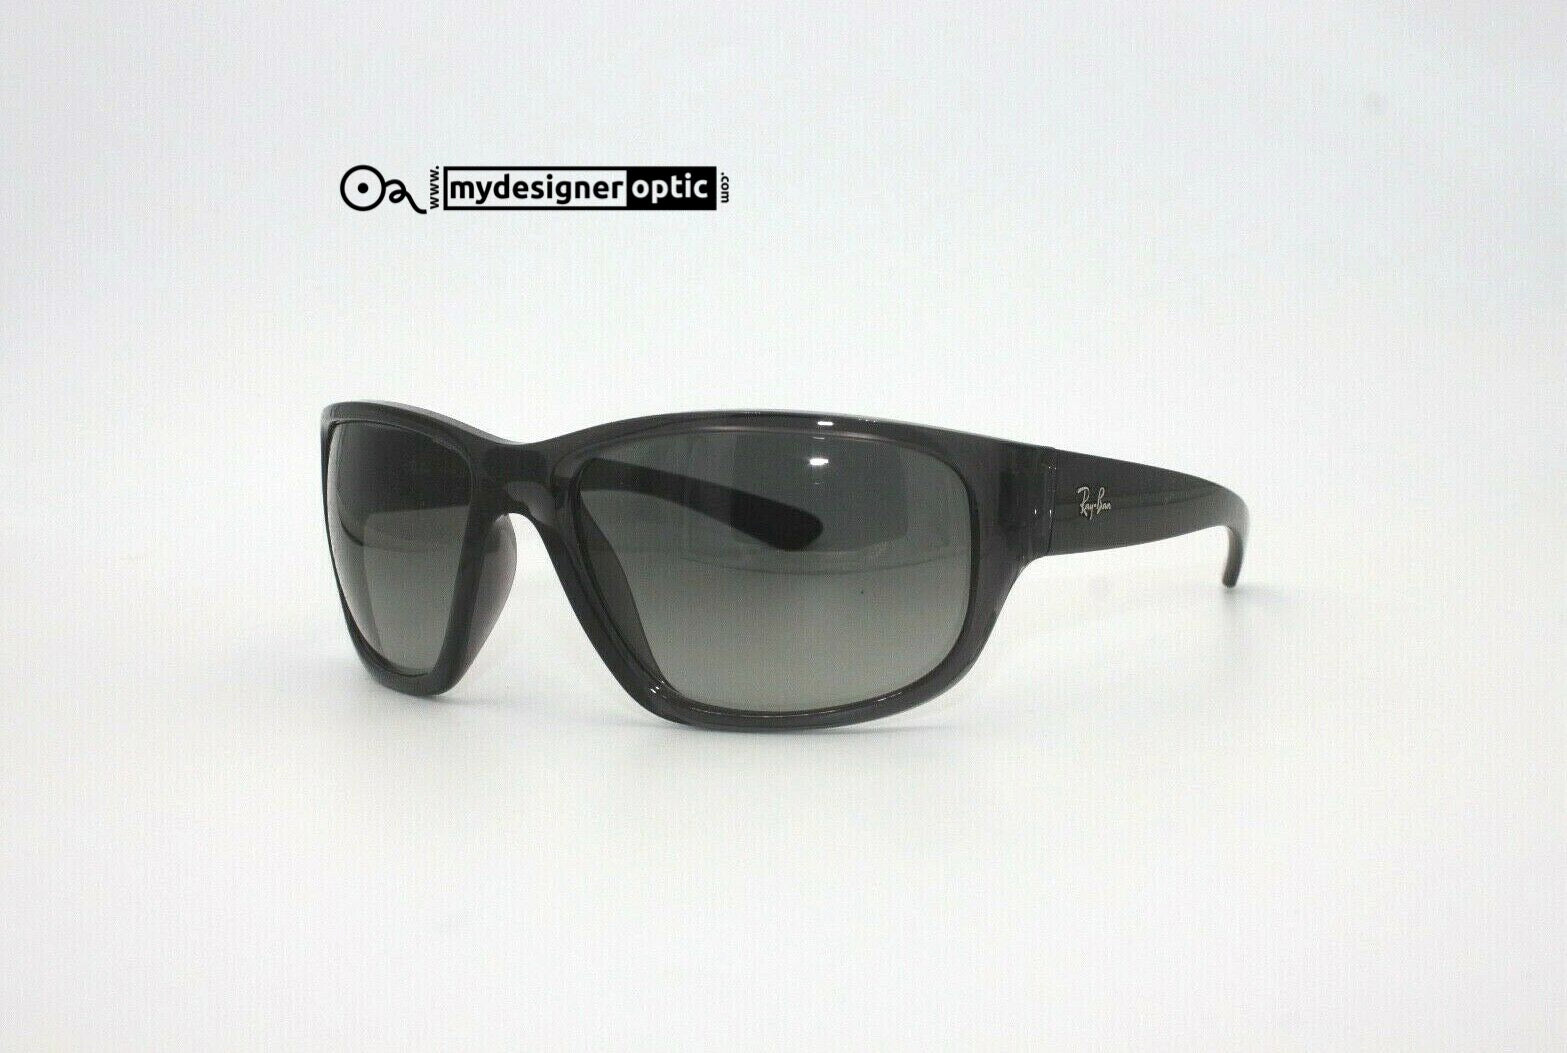 Ray Ban Sunglasses RB 4300 705/71 63-18 130 3N Made in Italy - Mydesigneroptic